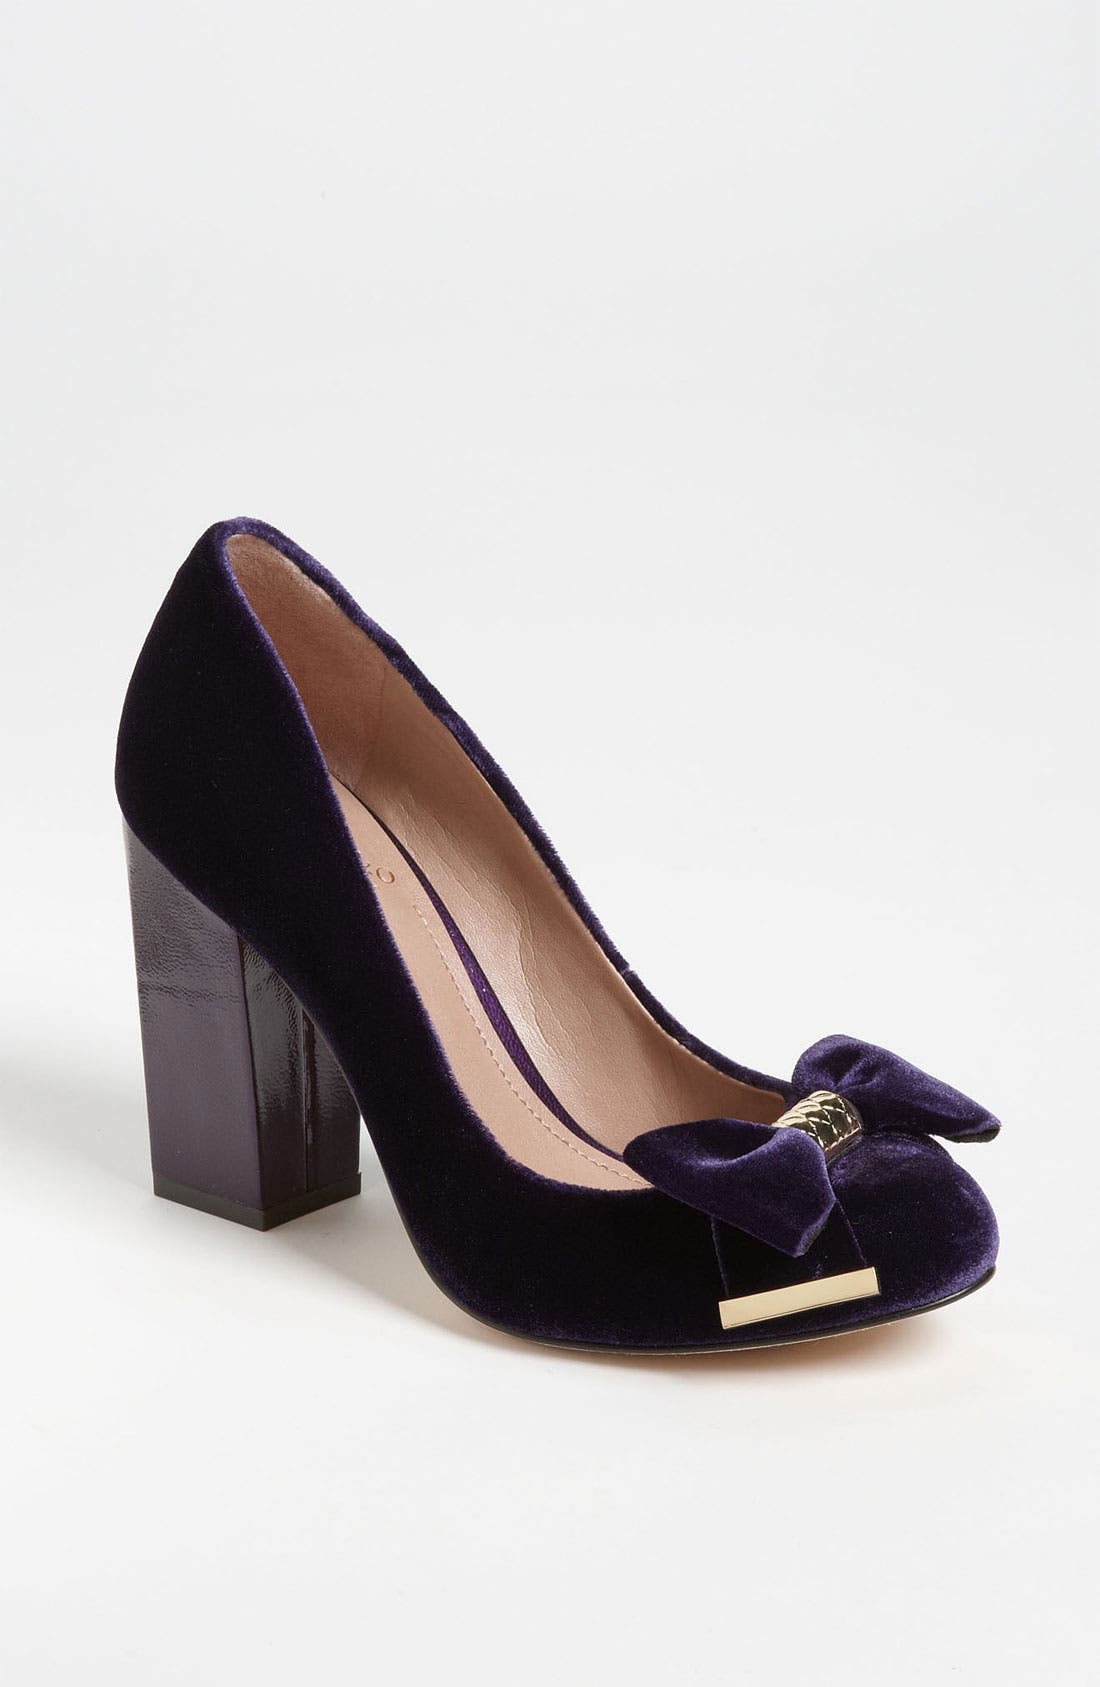 Alternate Image 1 Selected - Vince Camuto 'Verona' Pump